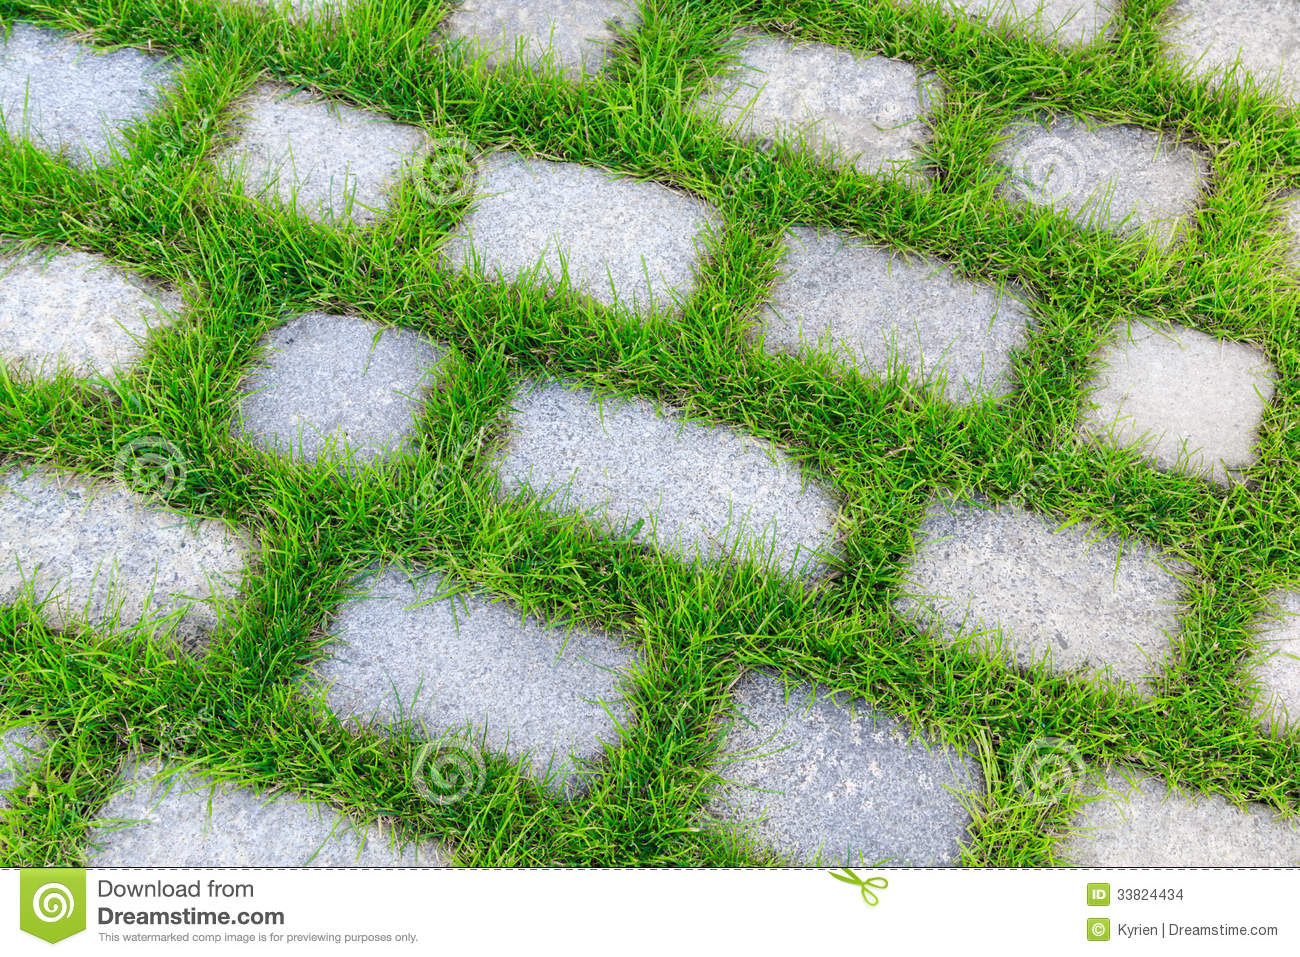 Stone Tiles With Grass In Between Stock Photo - Image of grow ...